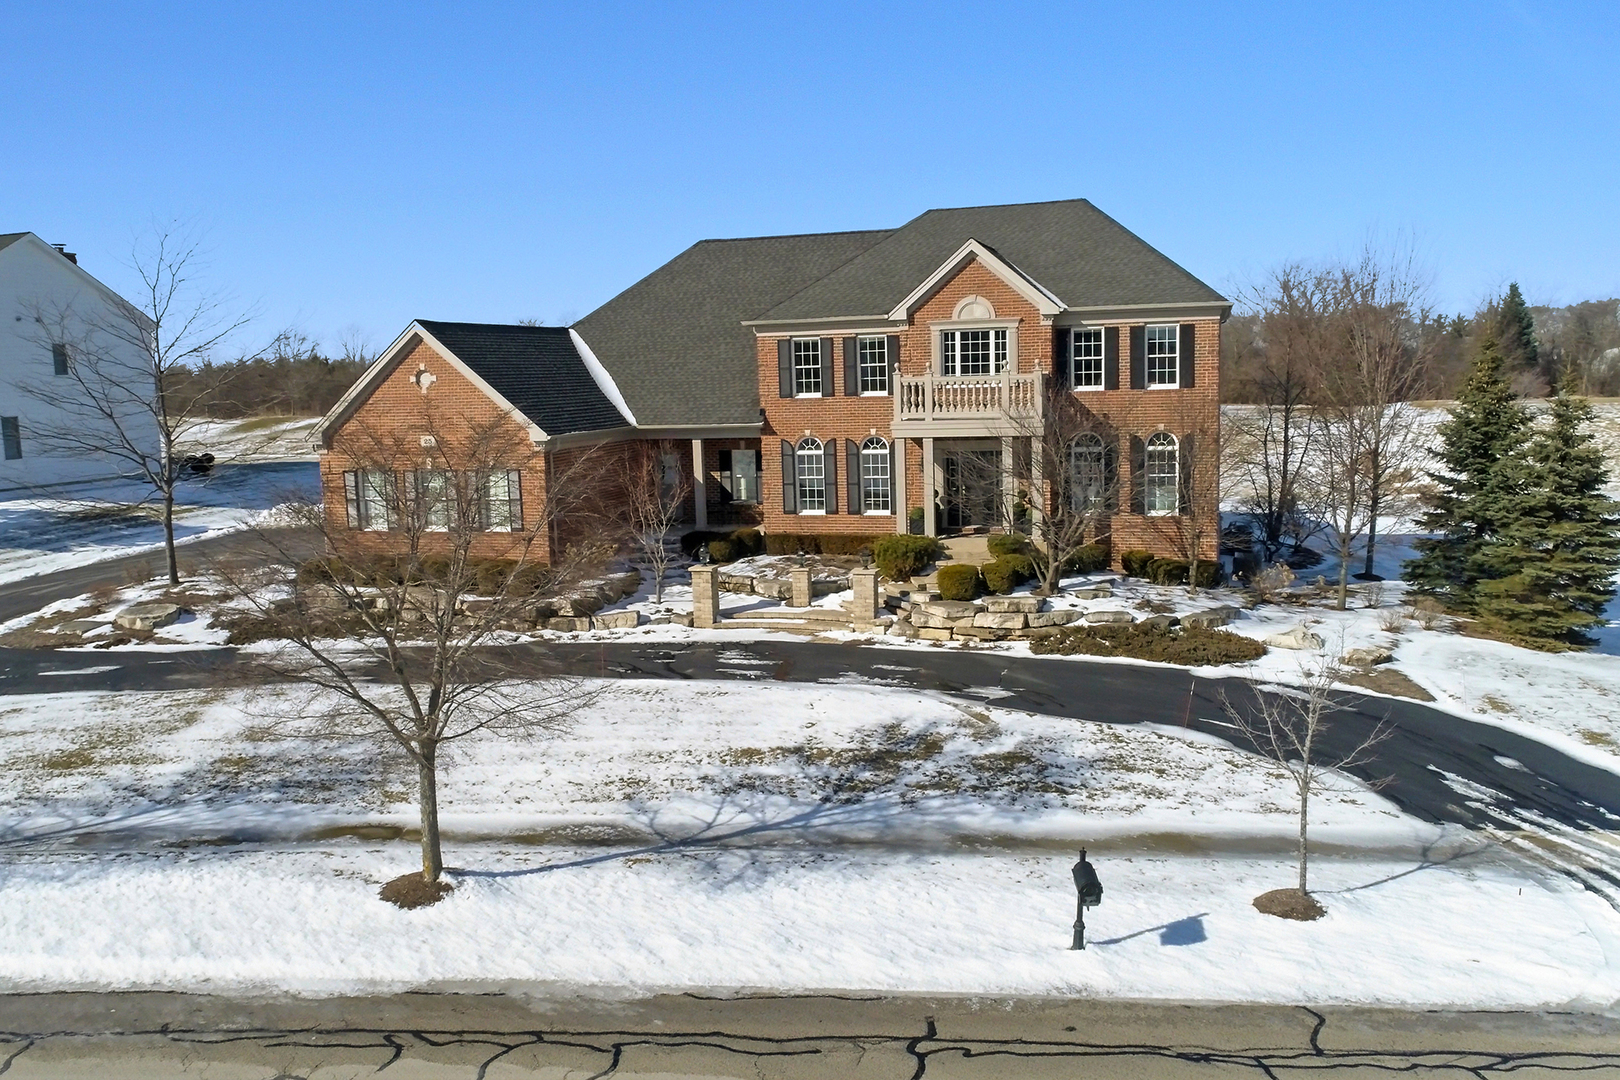 25 Tournament Drive, Hawthorn Woods, Illinois 60047